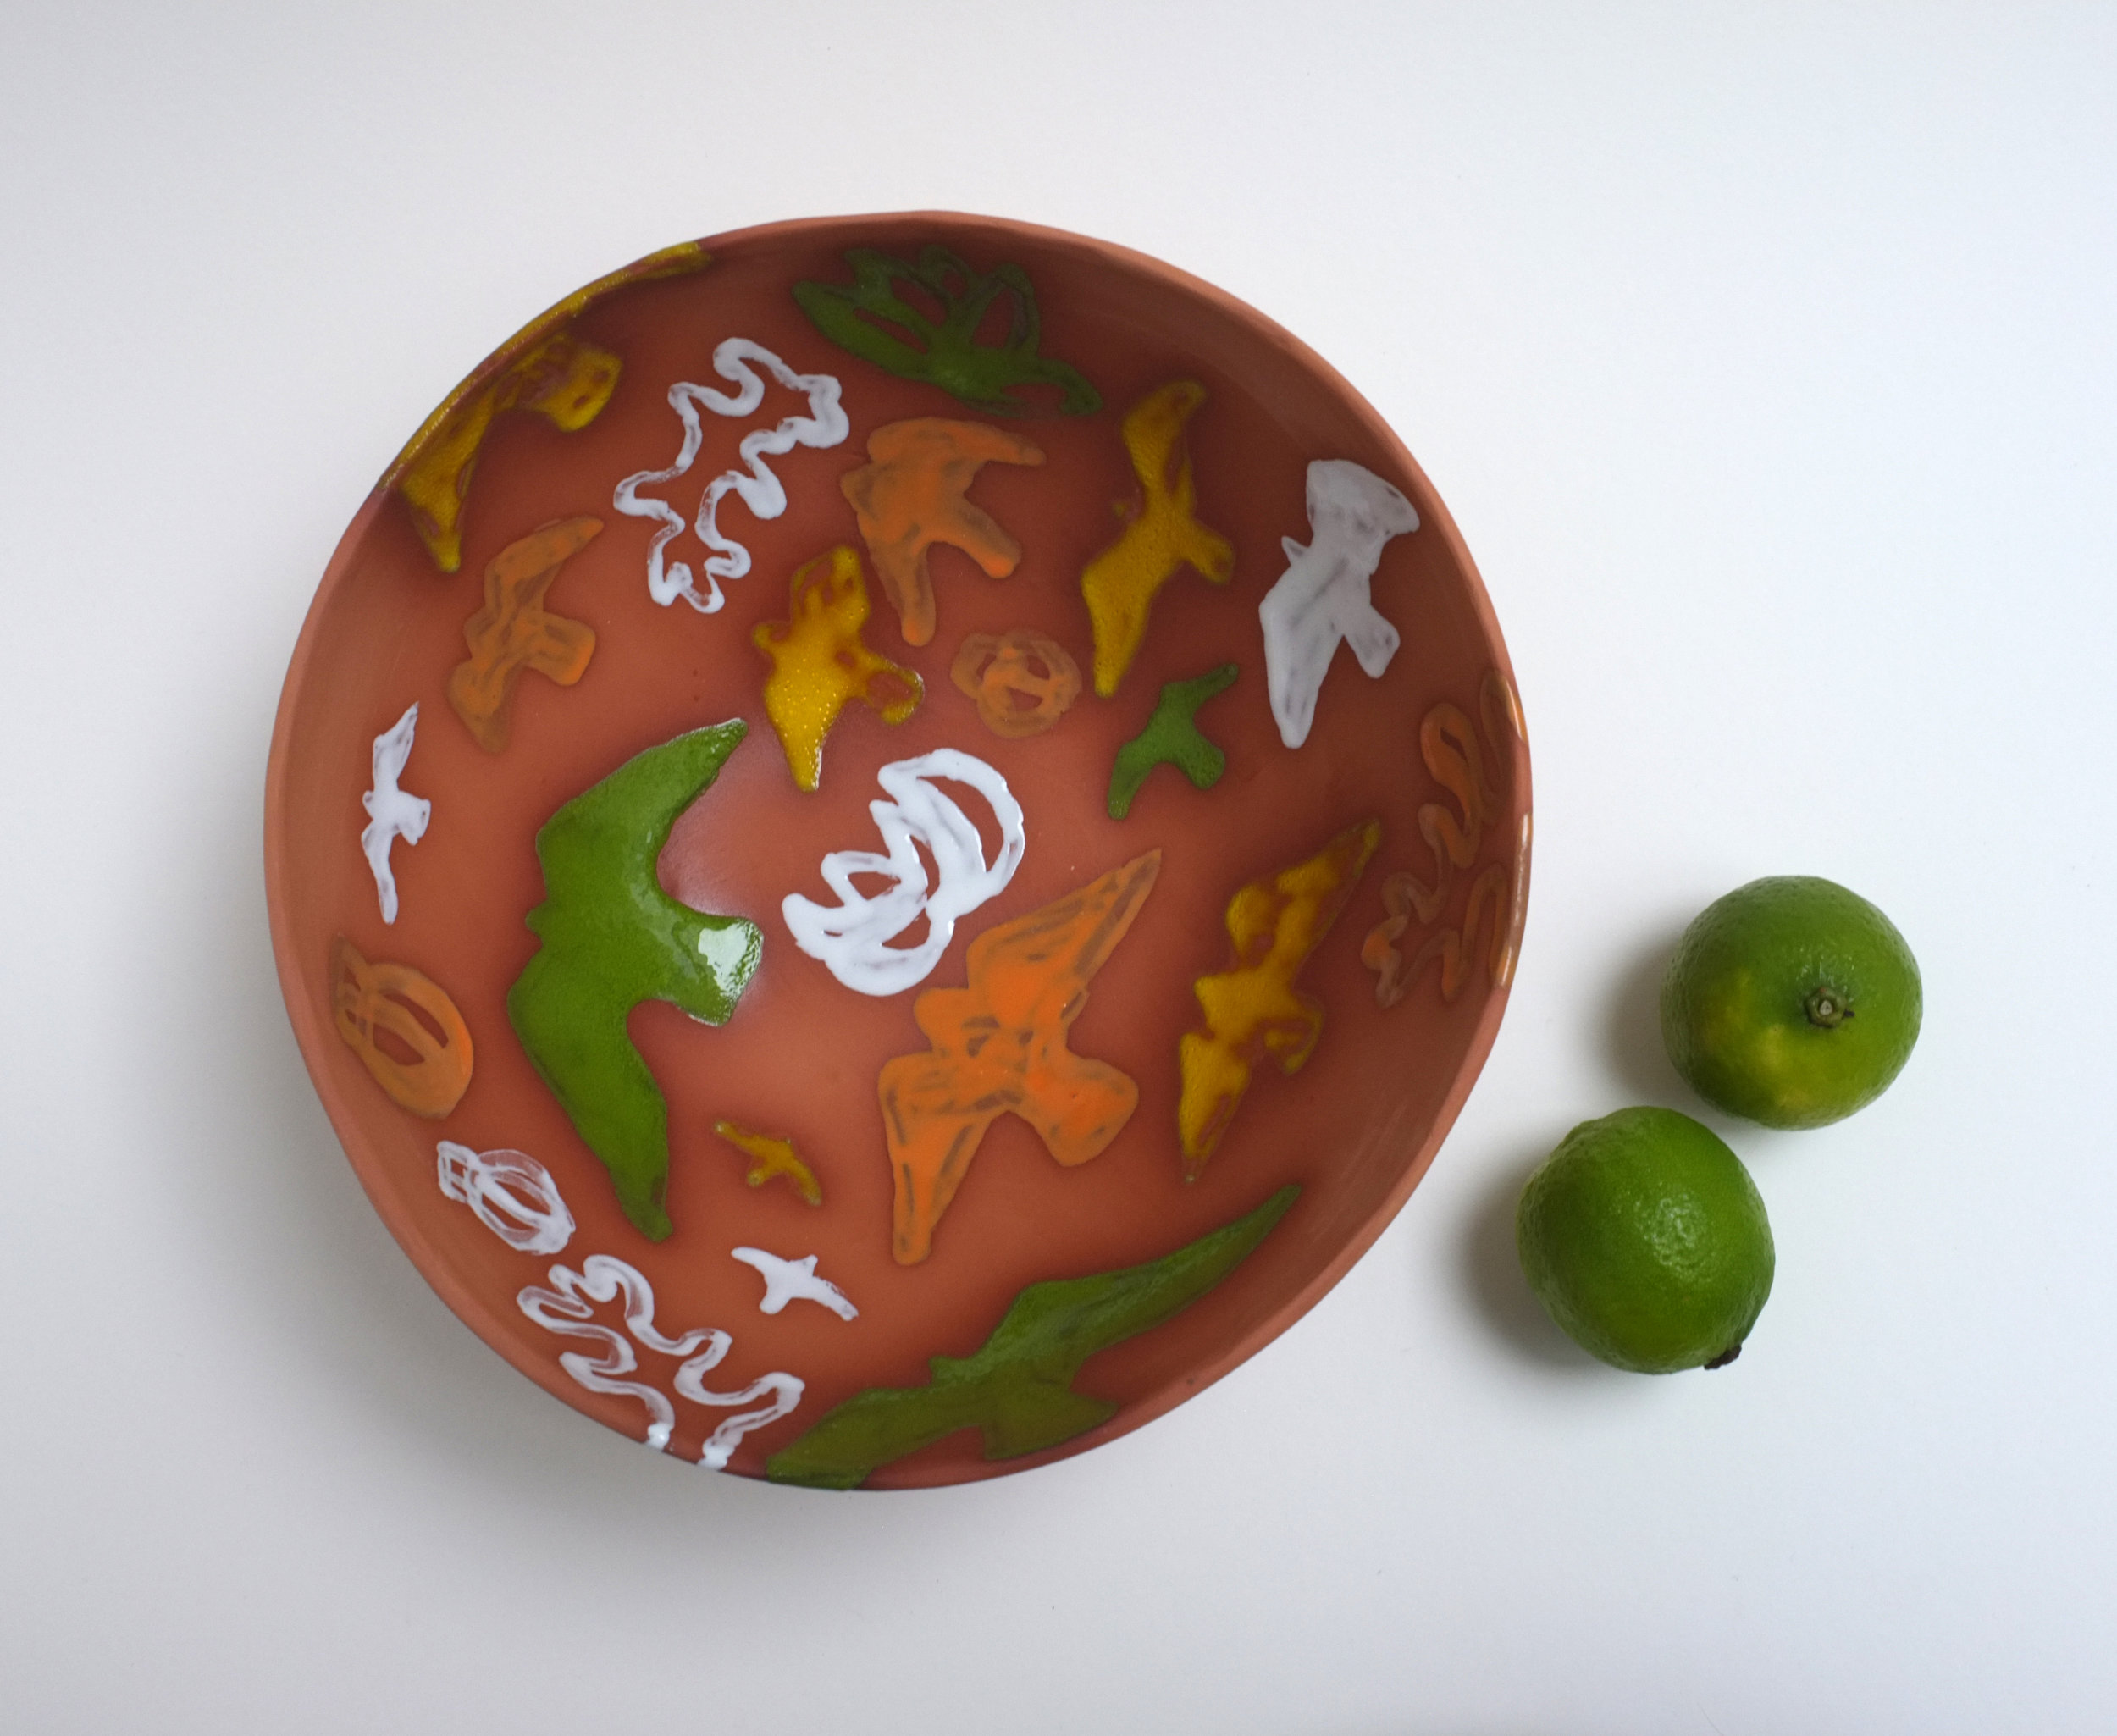 Color-birds-terracotta-plate_Ingaga-1.jpg